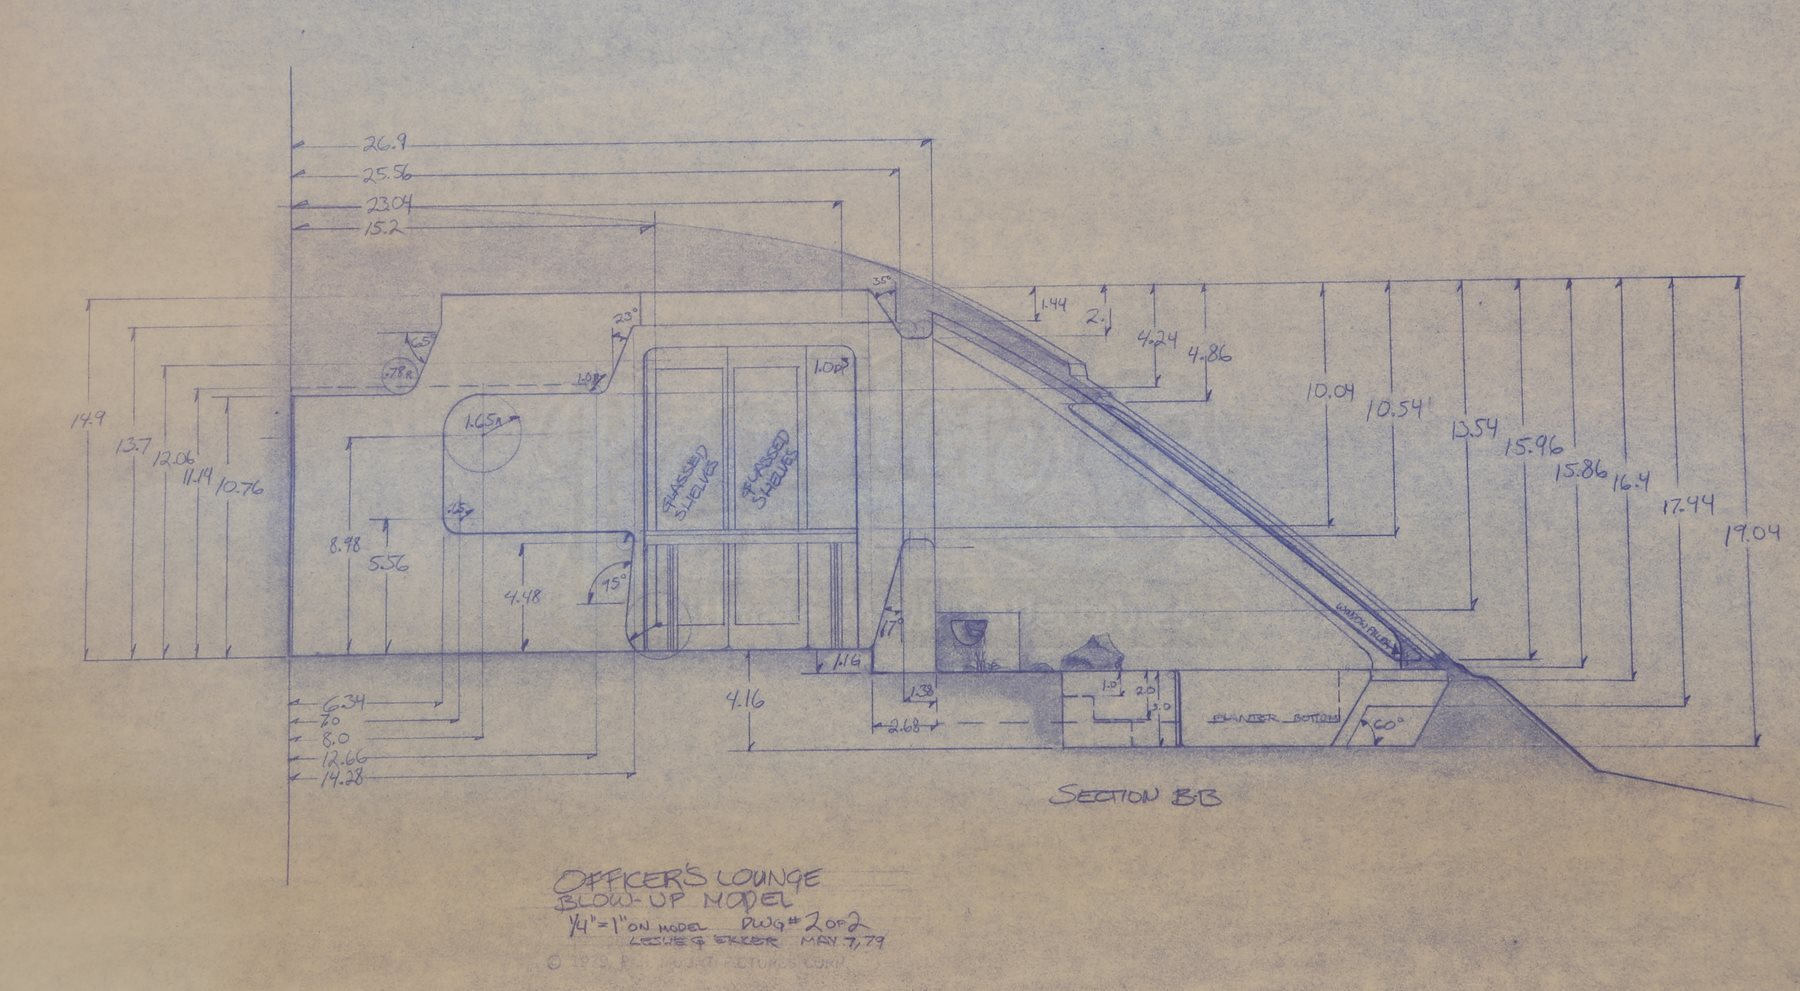 Star trek the motion picture officers lounge blueprint current lot 10 malvernweather Images